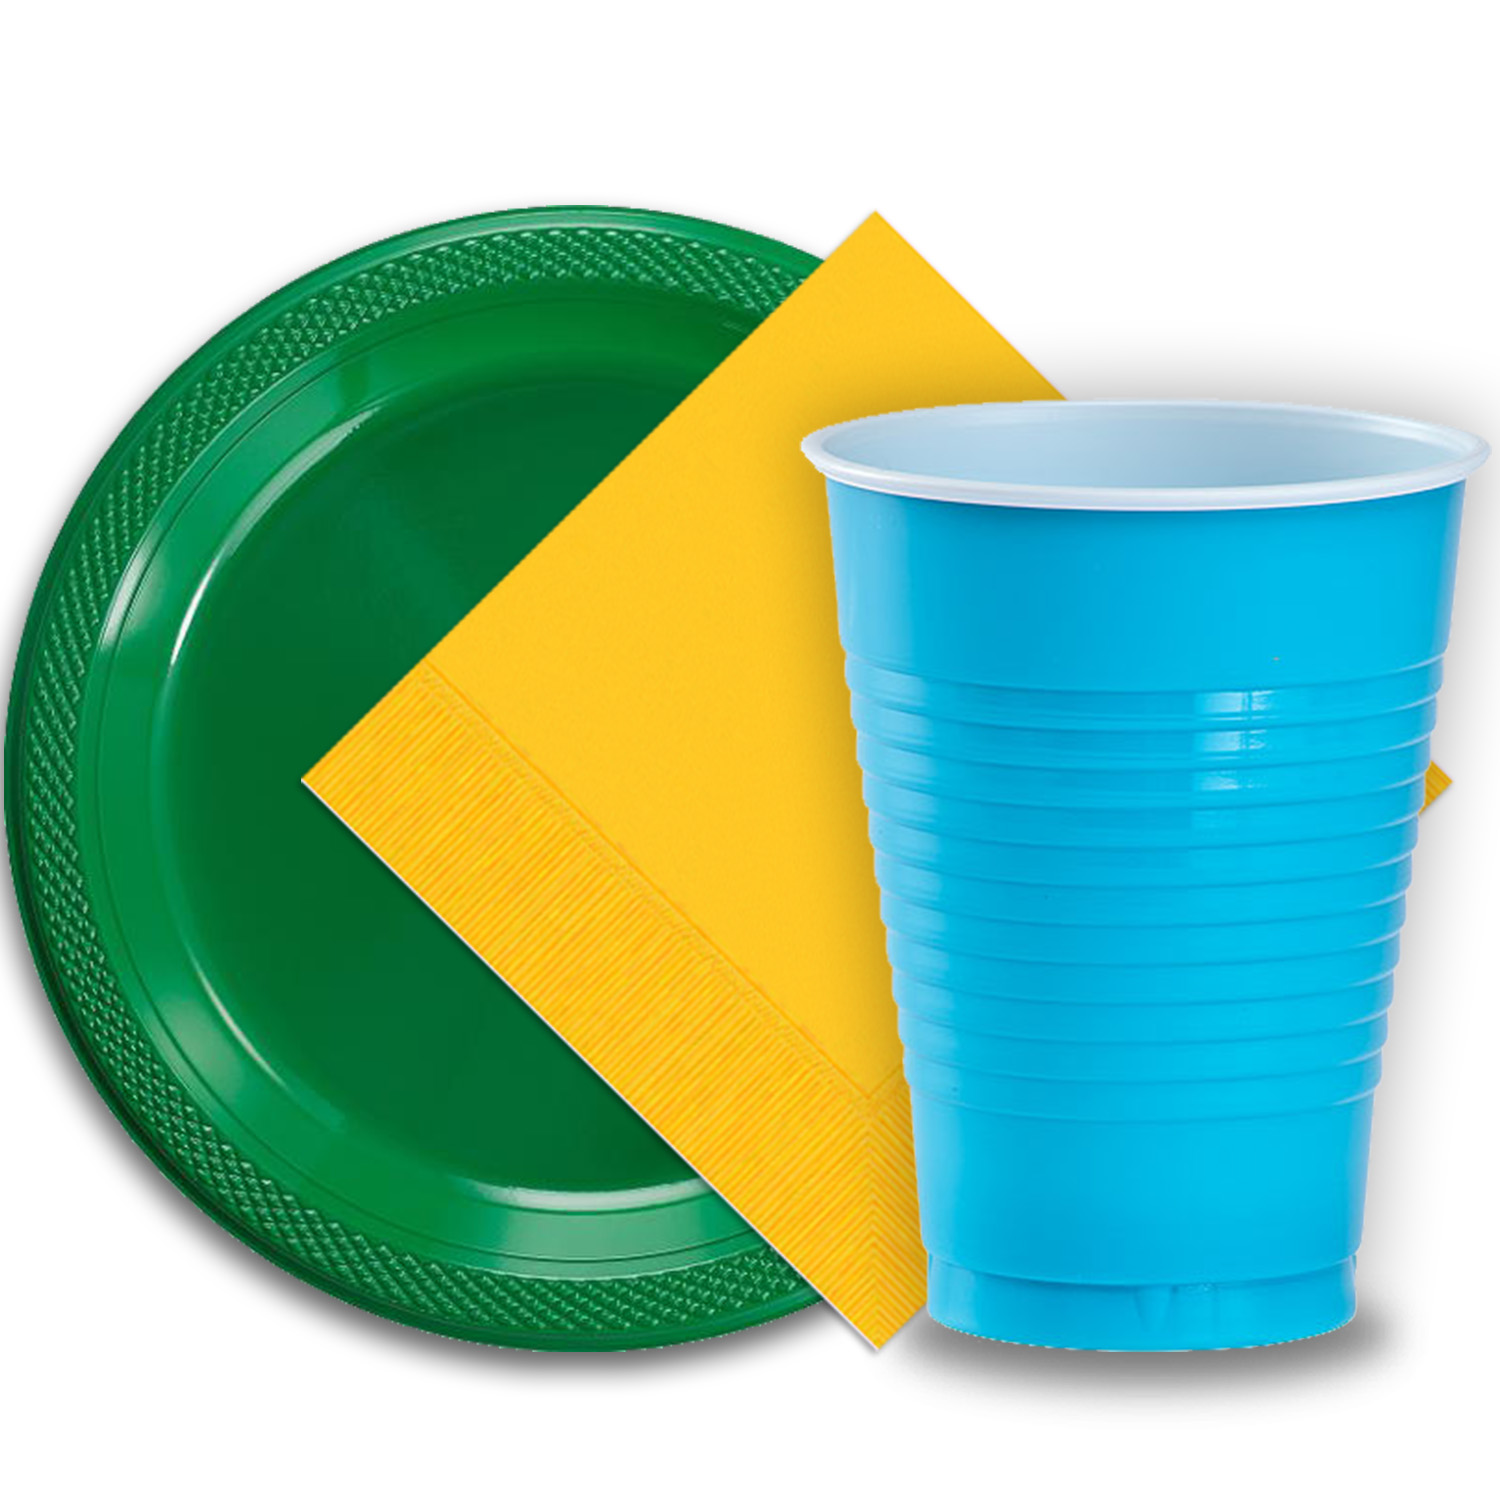 """50 Emerald Green Plastic Plates (9""""), 50 Aqua Plastic Cups (12 oz.), and 50 Yellow Paper Napkins, Dazzelling Colored Disposable Party Supplies Tableware Set for Fifty Guests."""